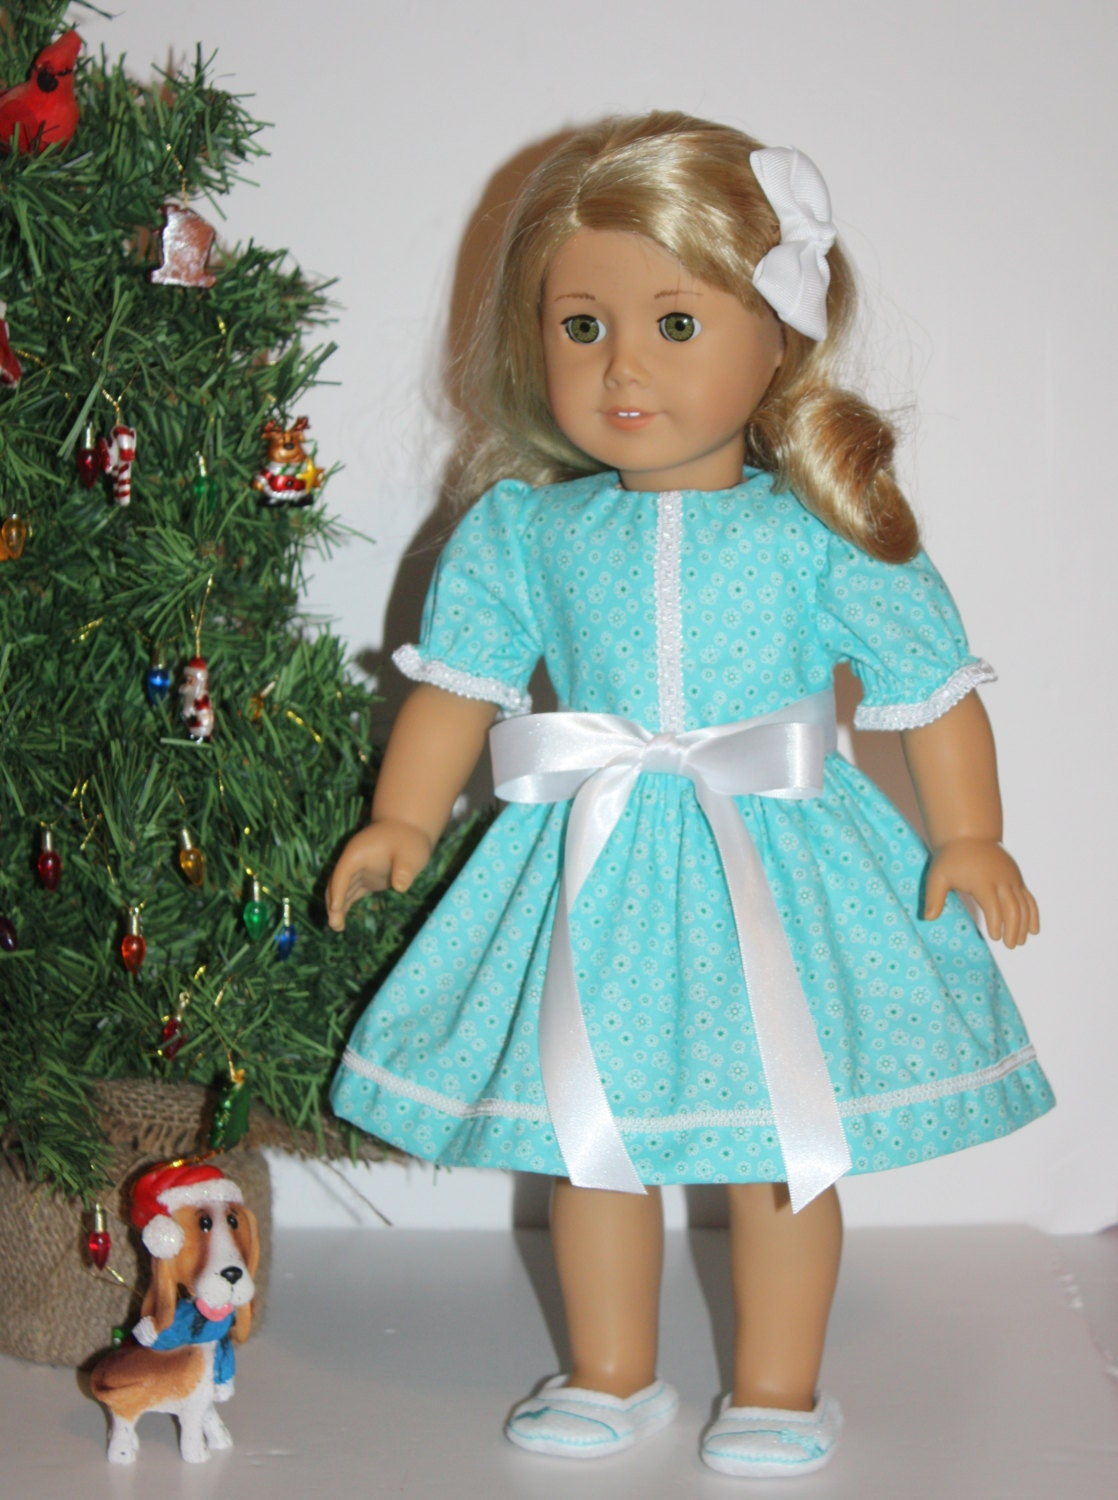 "SALE was 14.00  Doll Clothes for American Girl dolls Aqua Teal Dress Fits 18 inch Dolls, 18"" Doll Clothes Dress - FrogBlossoms"